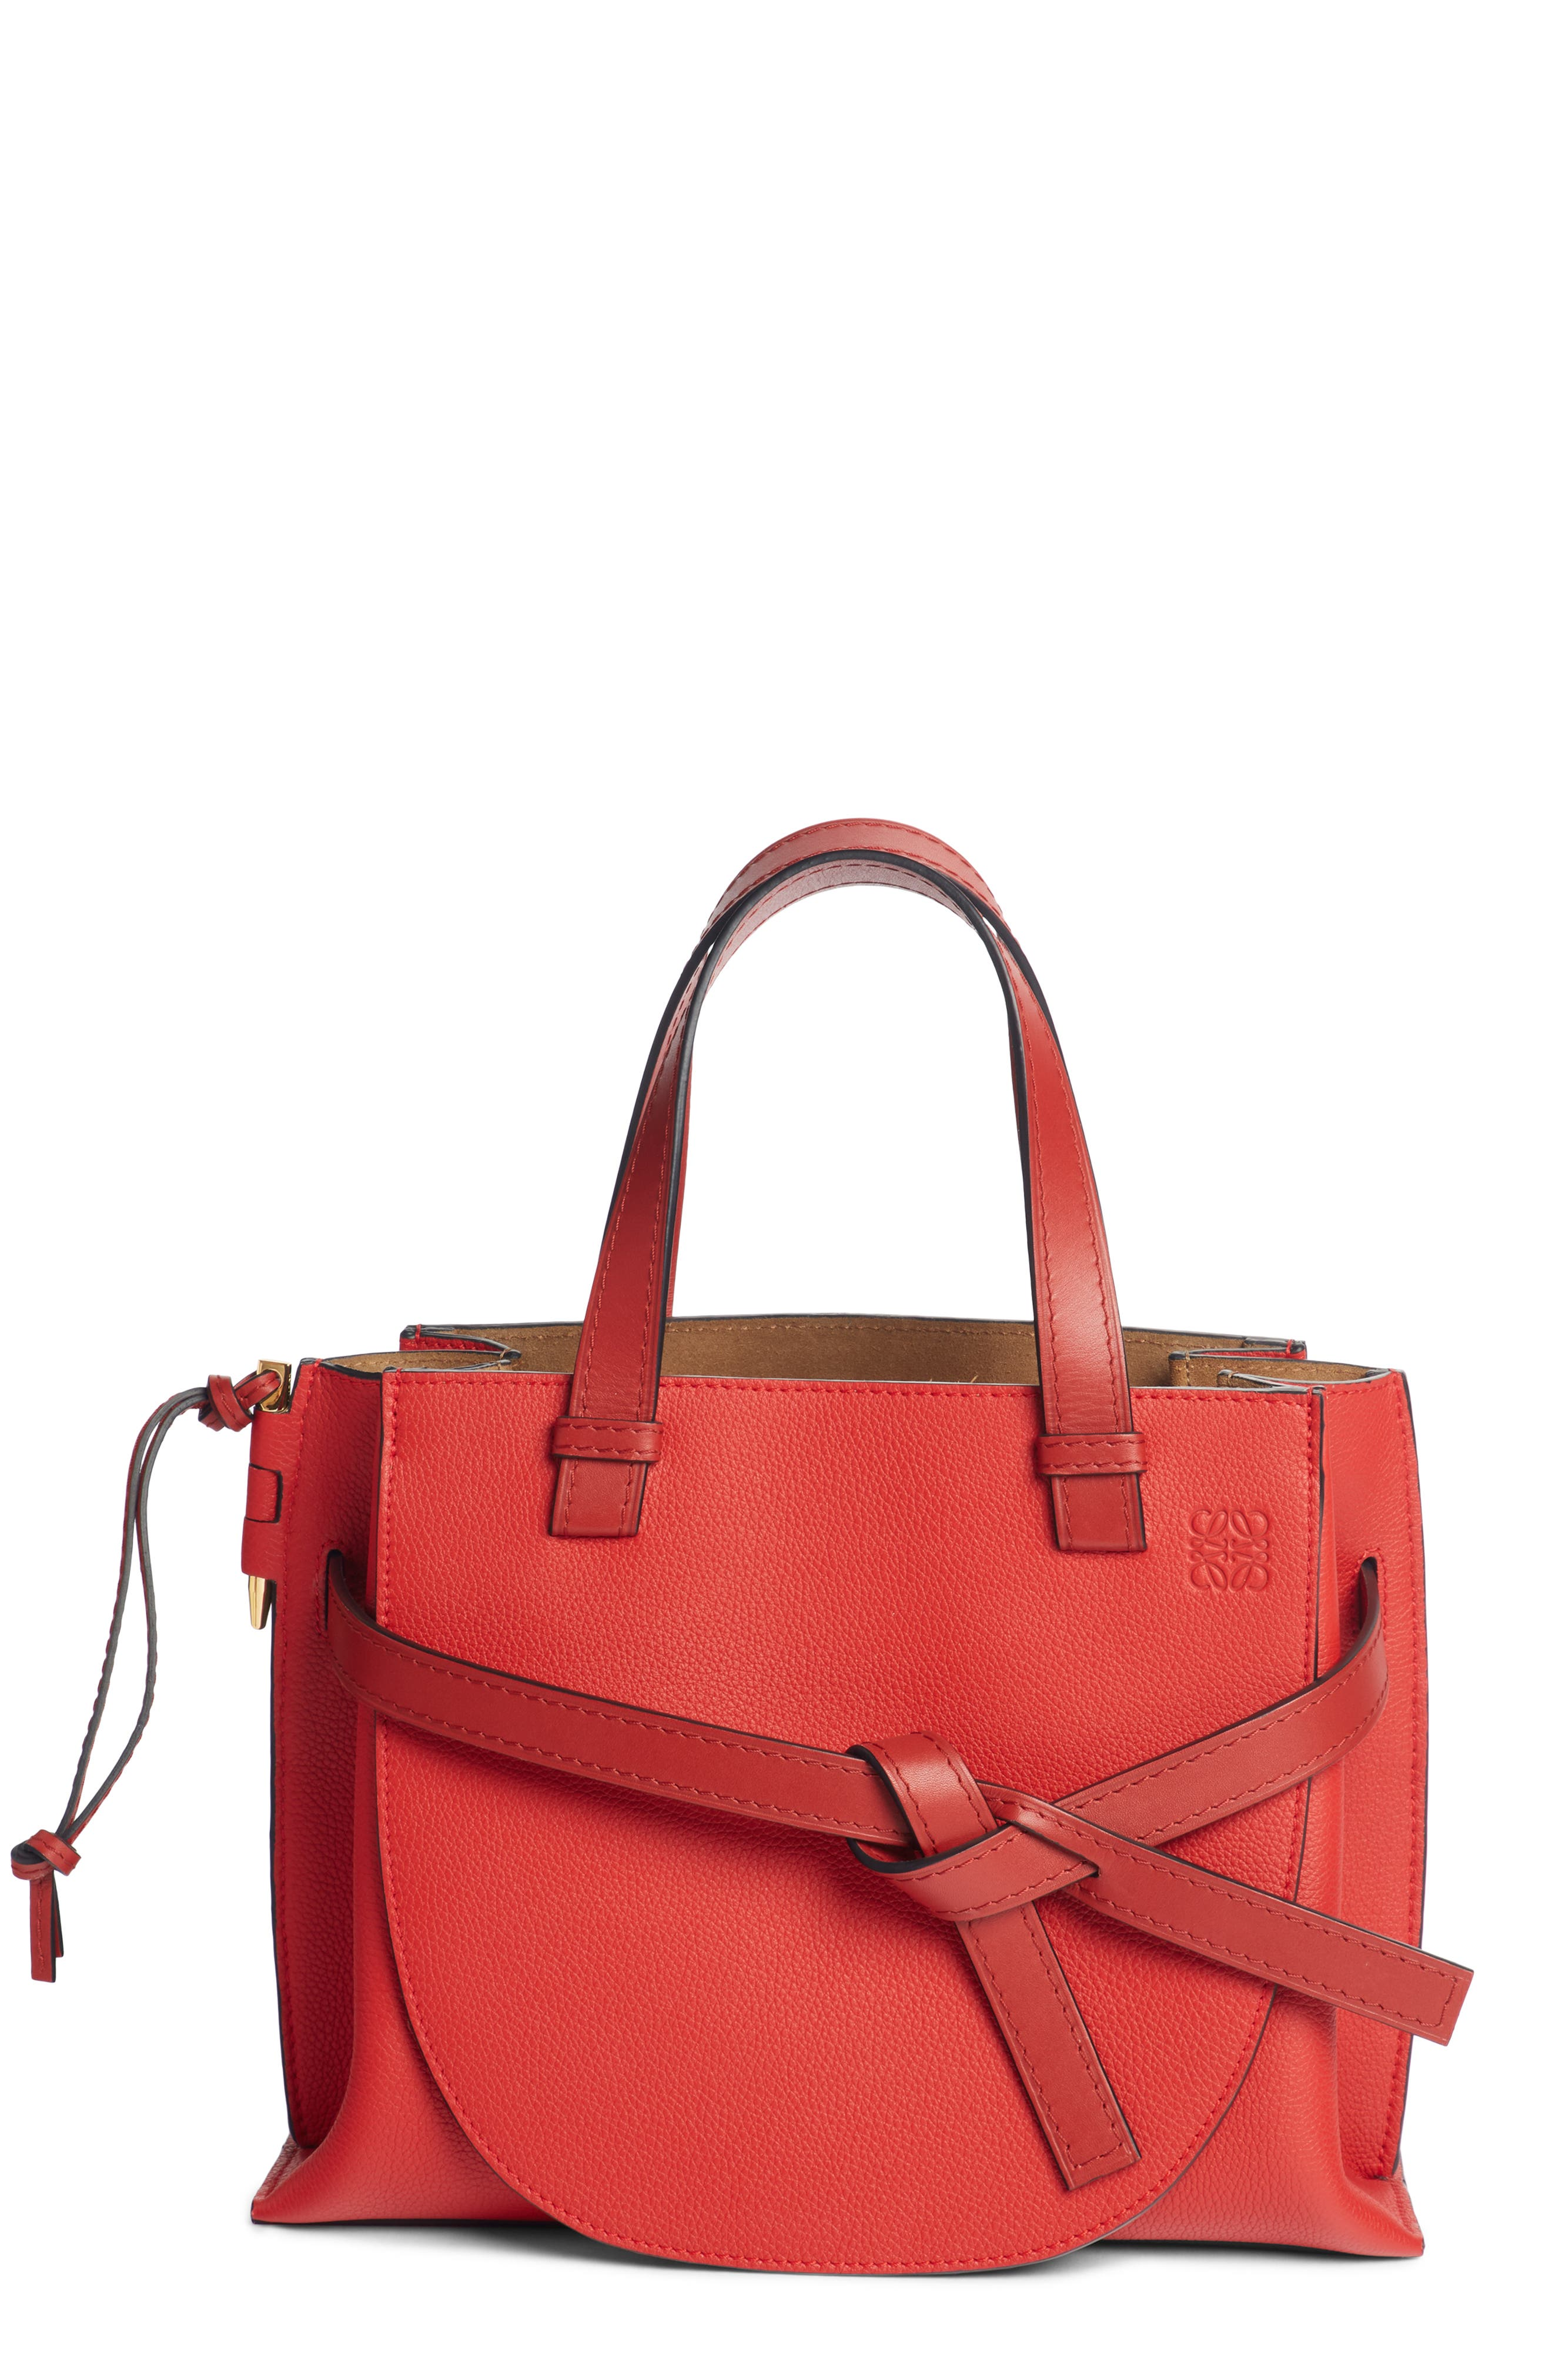 Gate Calfskin Leather Tote,                             Main thumbnail 1, color,                             SCARLET RED/ BURNT RED